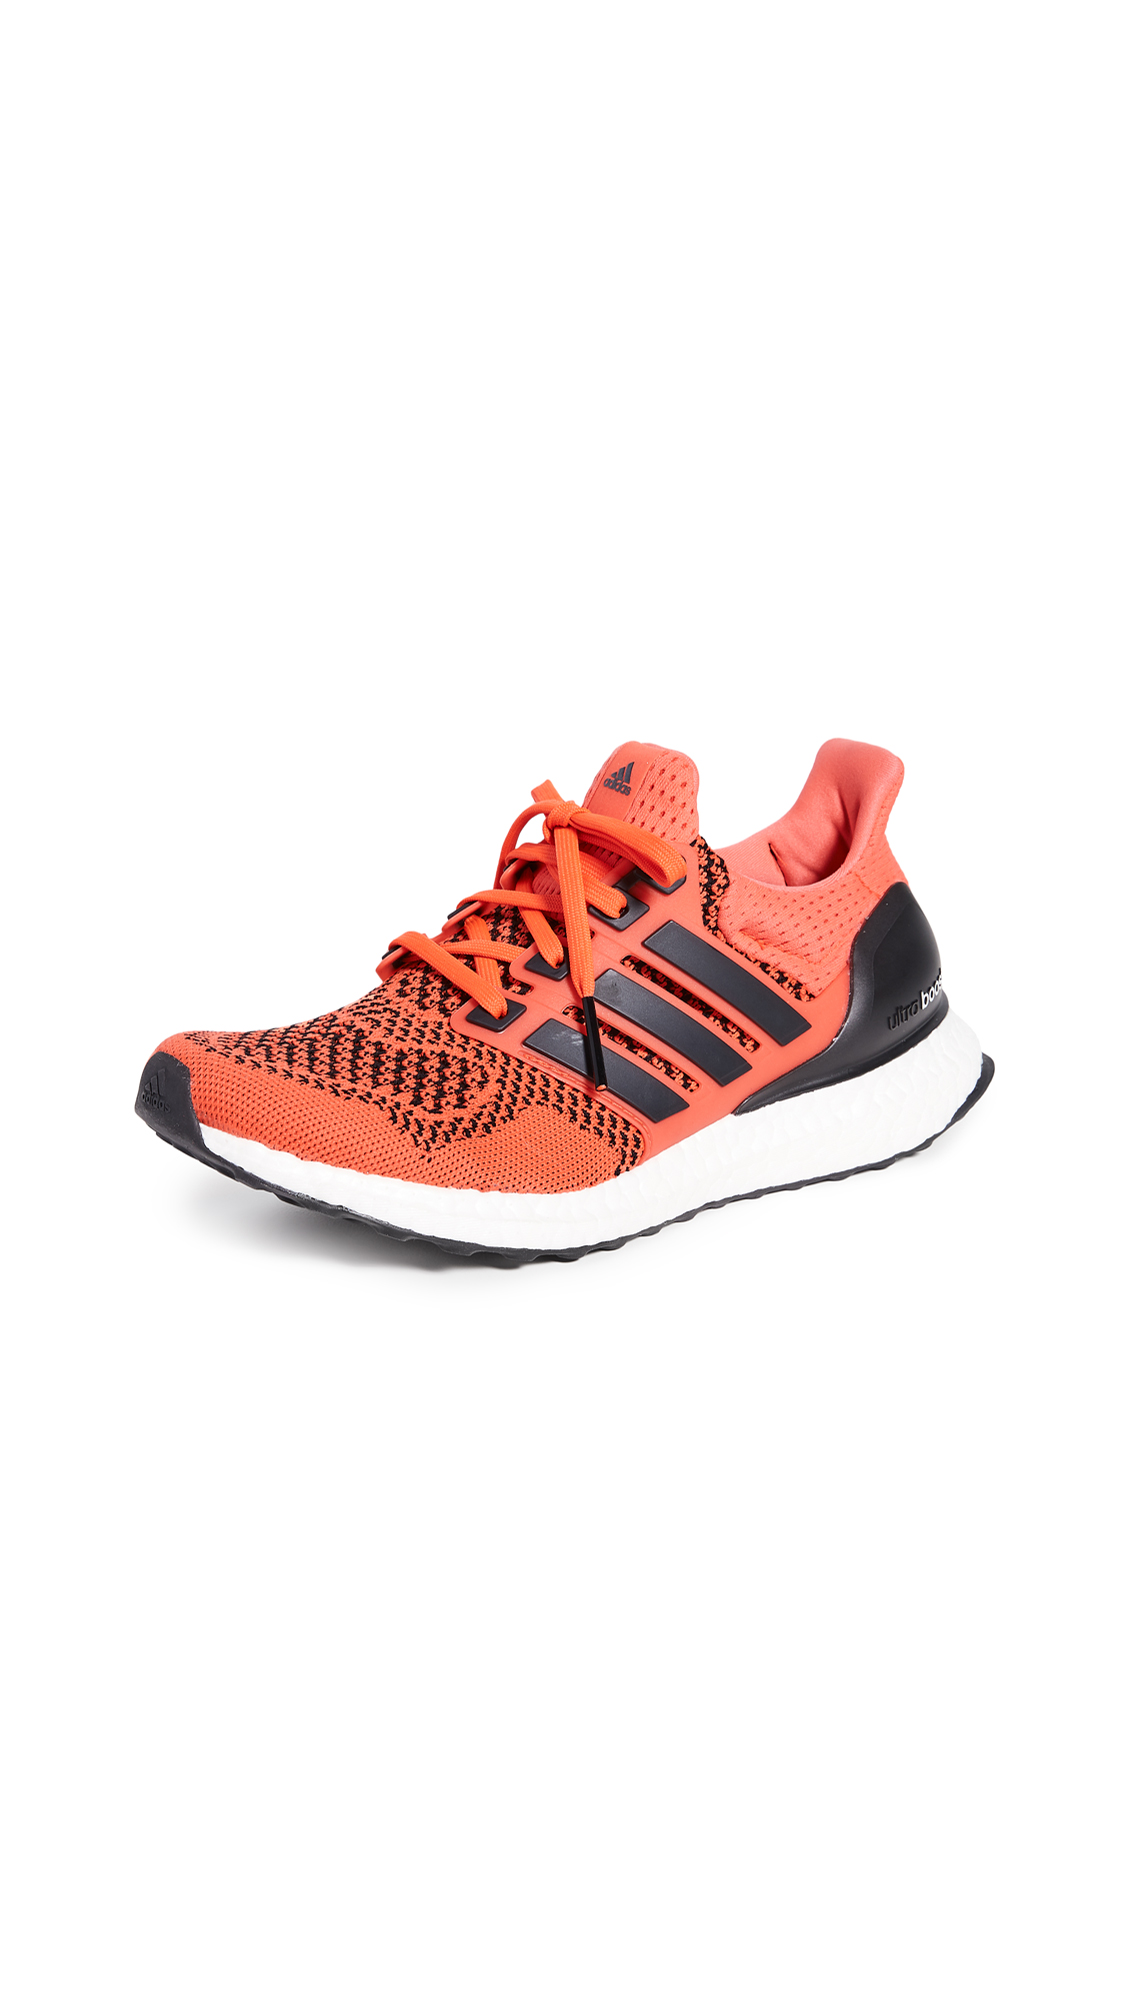 adidas Ultraboost 1.0 Sneakers - 40% Off Sale